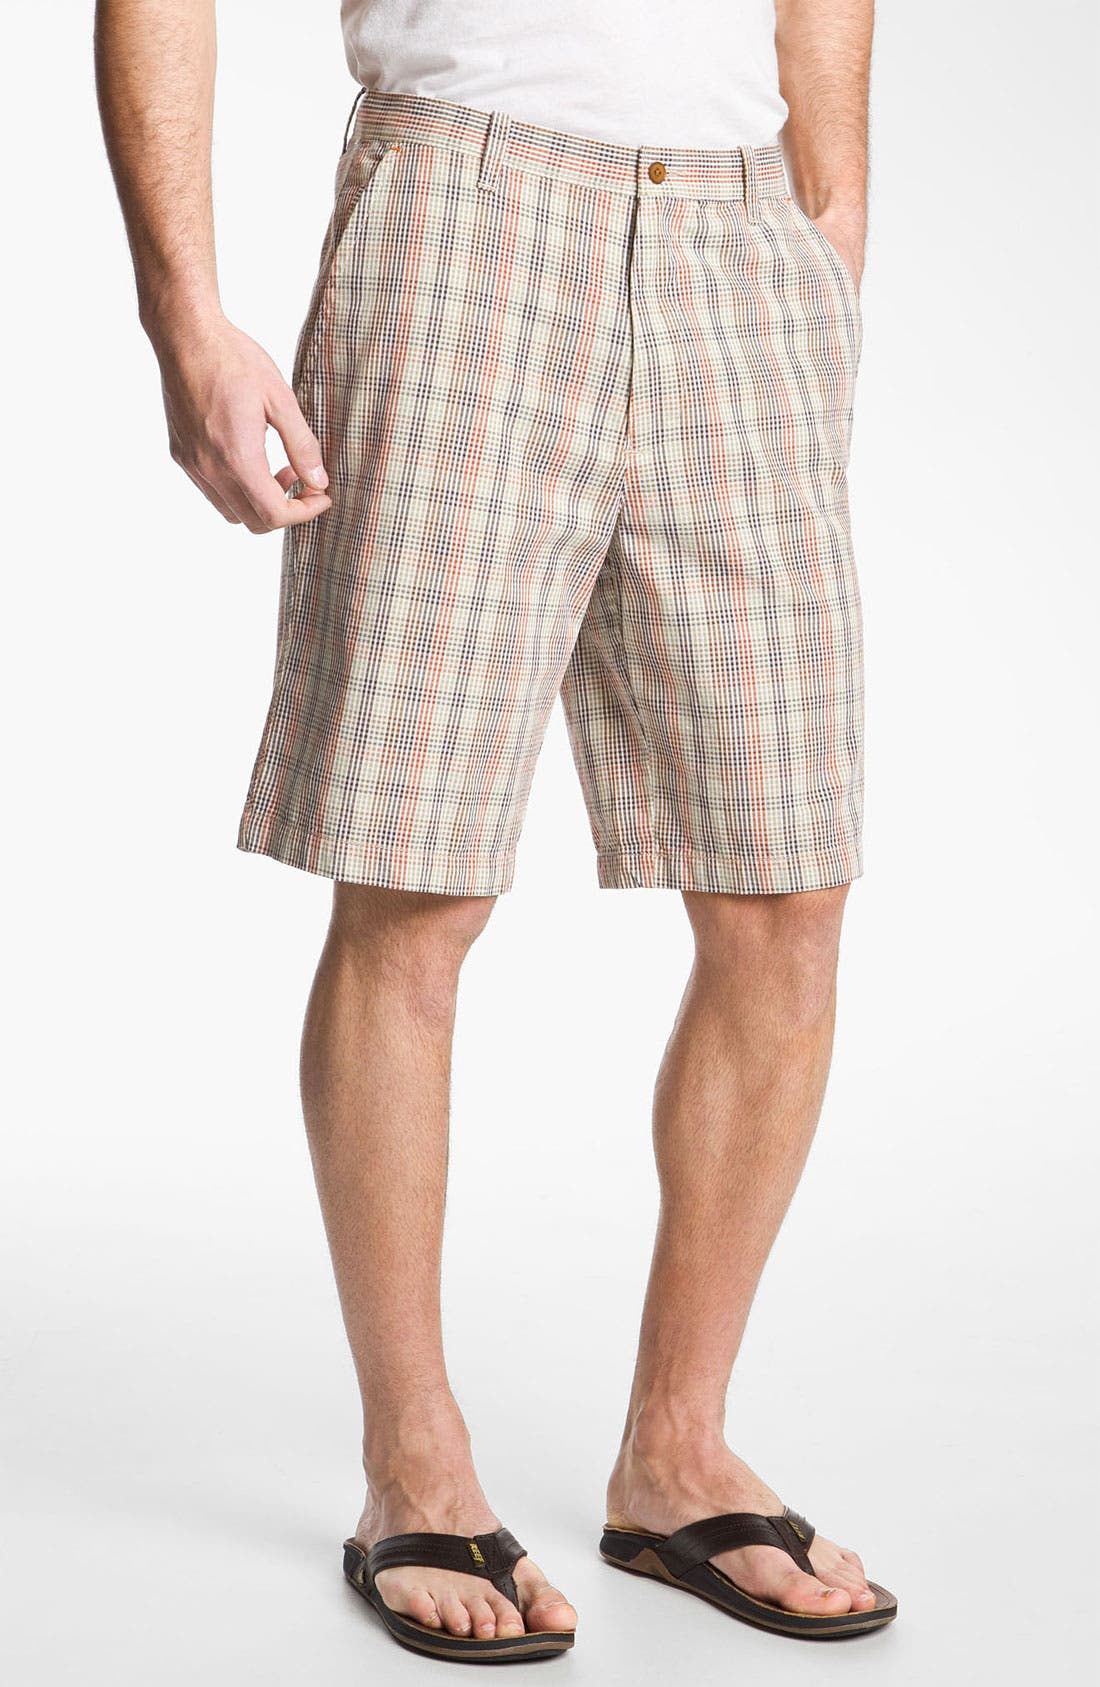 Alternate Image 1 Selected - Tommy Bahama 'Seven Seers' Shorts (Online Only)